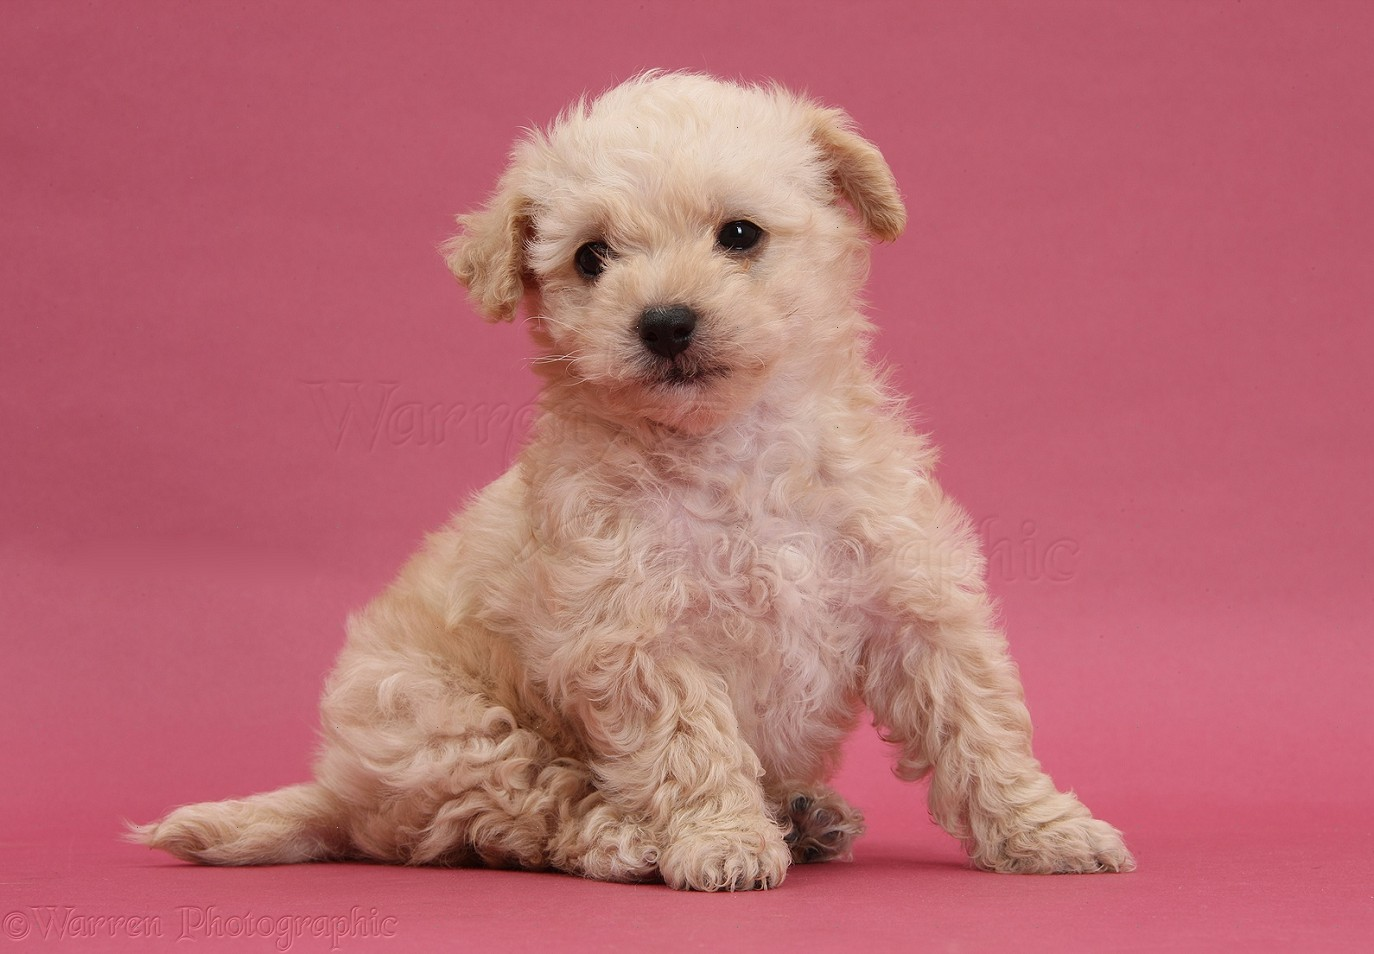 WP37871 Bichon Frisé x Yorkshire Terrier pup, 6 weeks old, sitting on ...